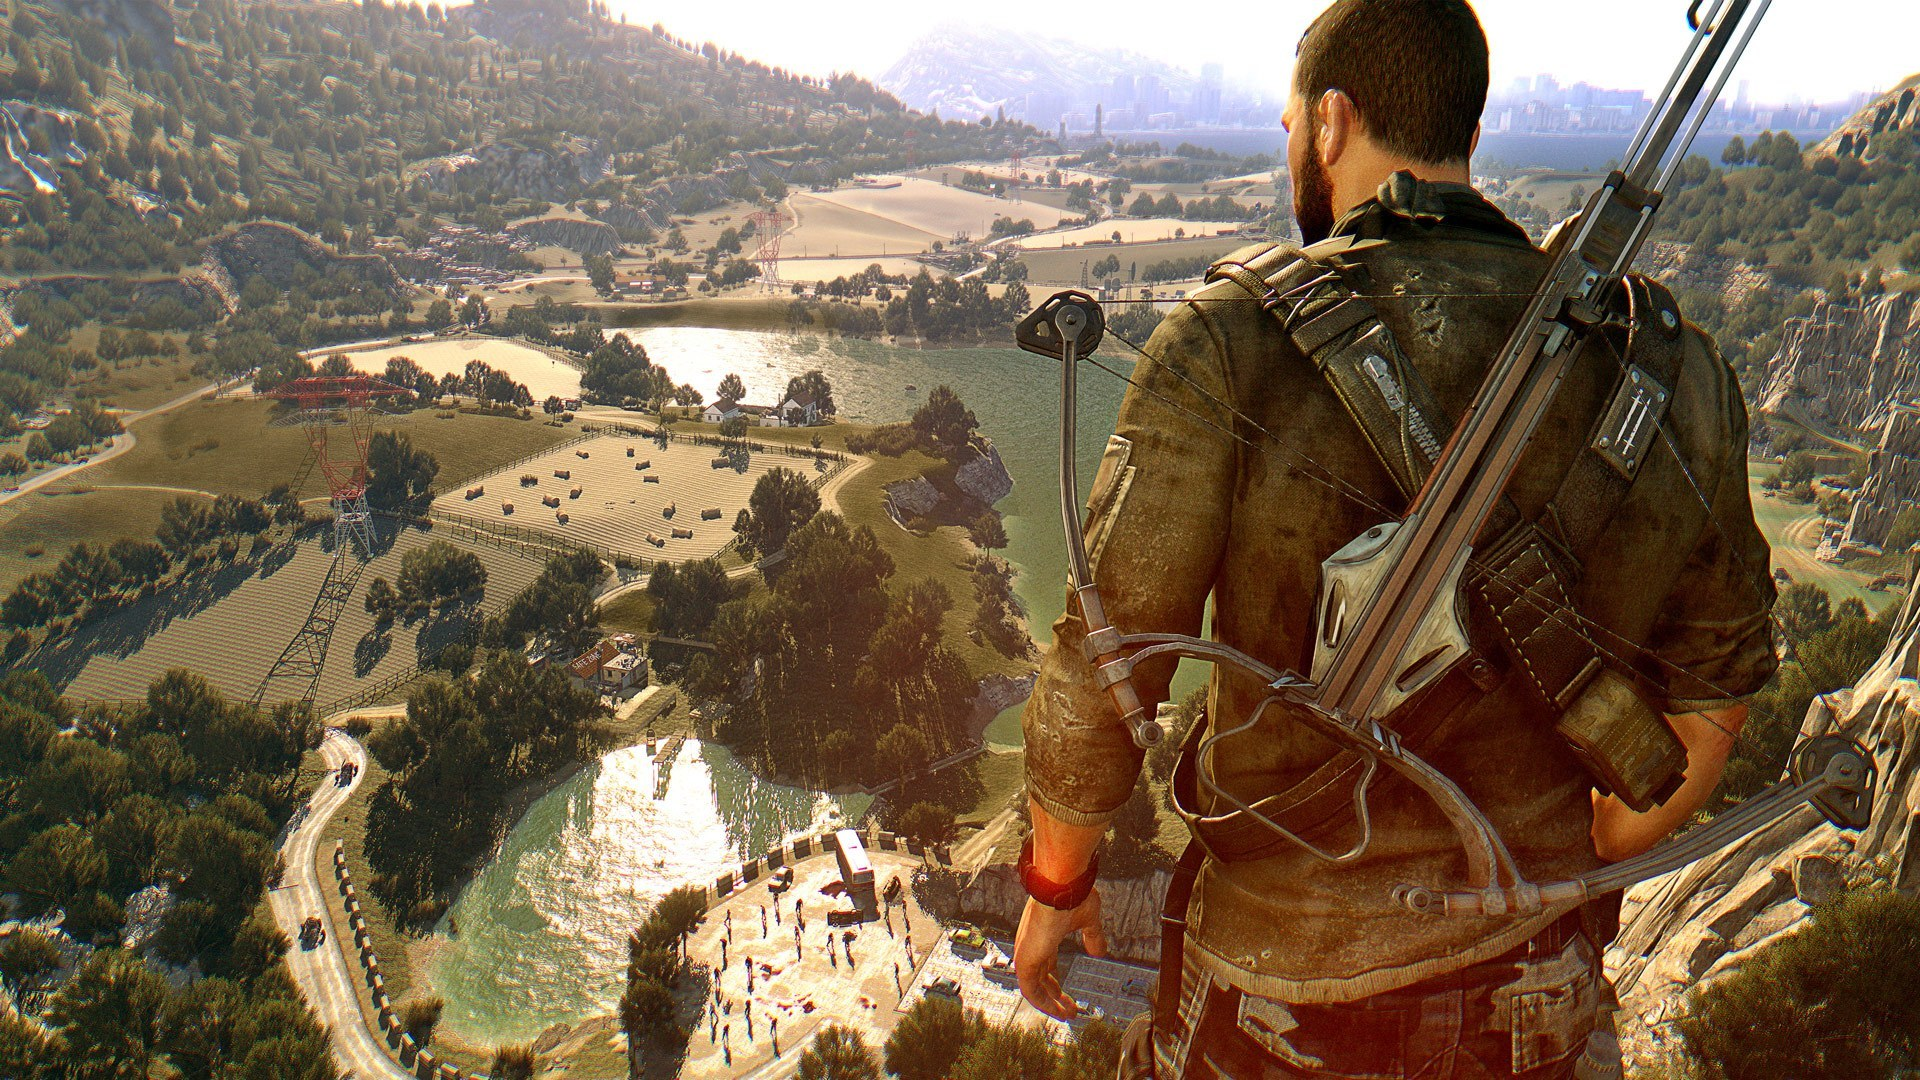 Dying Light - will you follow along with the price increase?